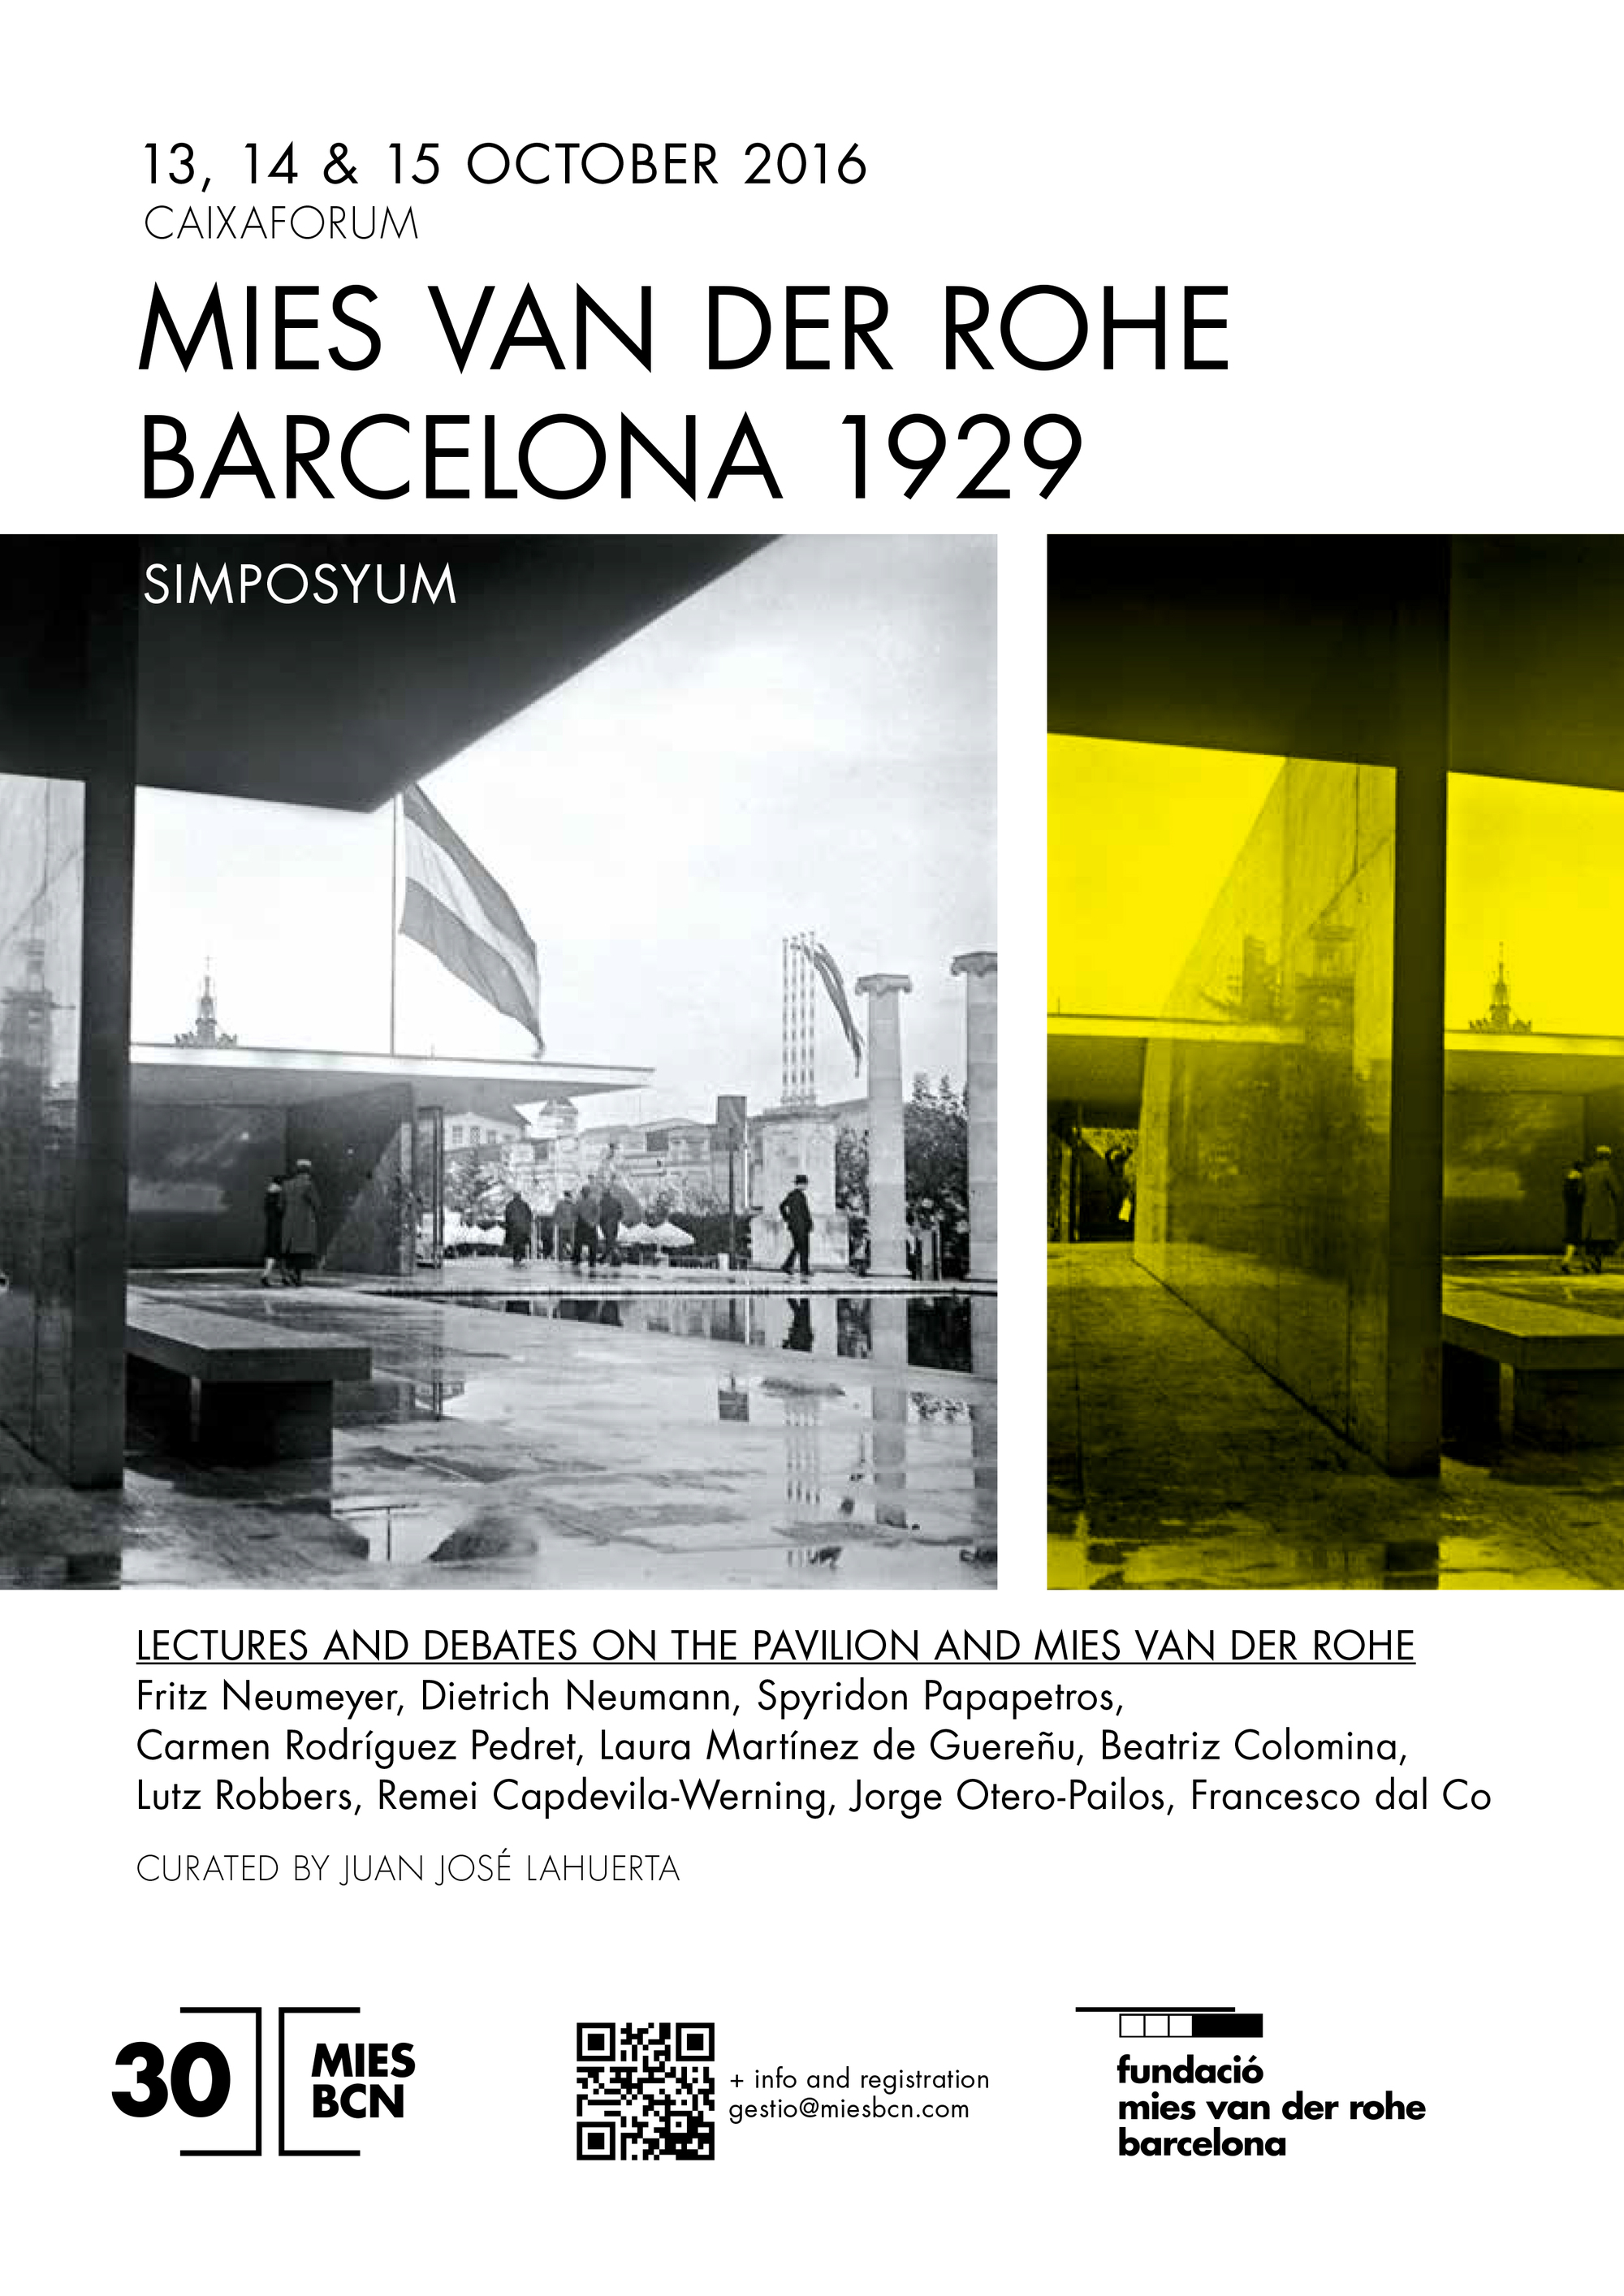 Symposium Mies Van Der Rohe Barcelona 1929 Lectures And Debates On The Pavilion And Mies Van Der Rohe Archdaily